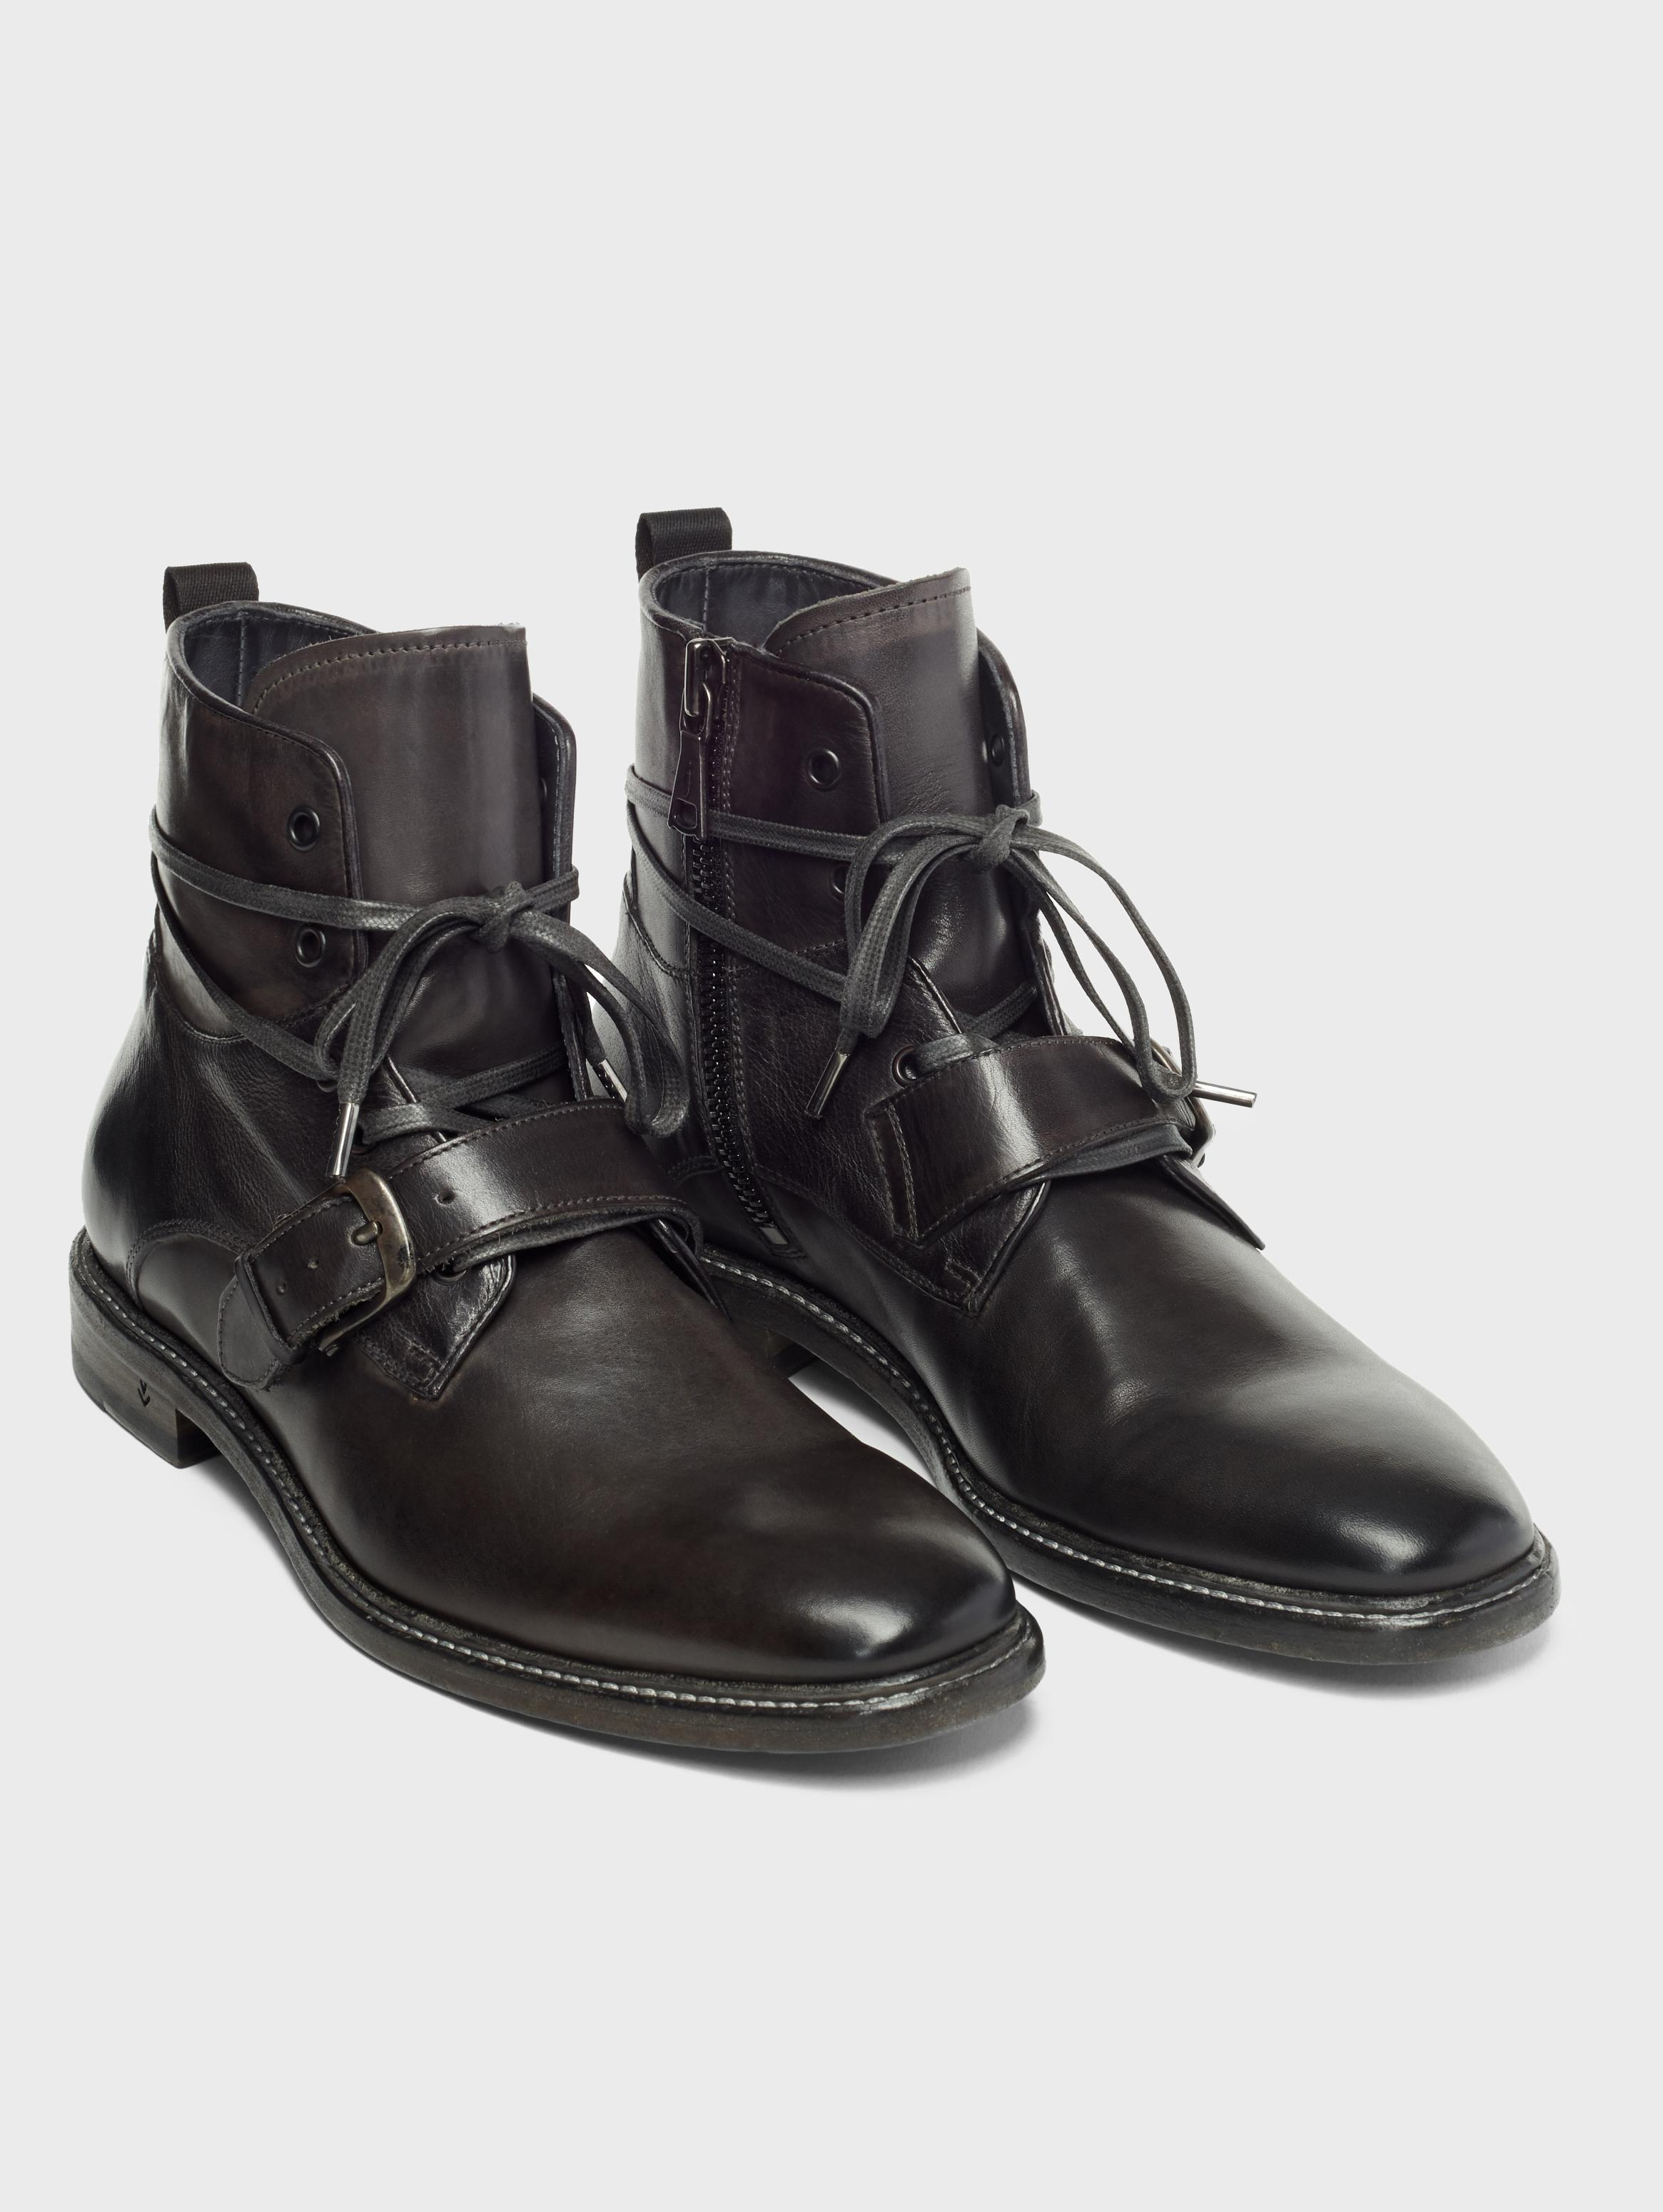 John Varvatos Irving Welted Buckle Lace Boots Lead